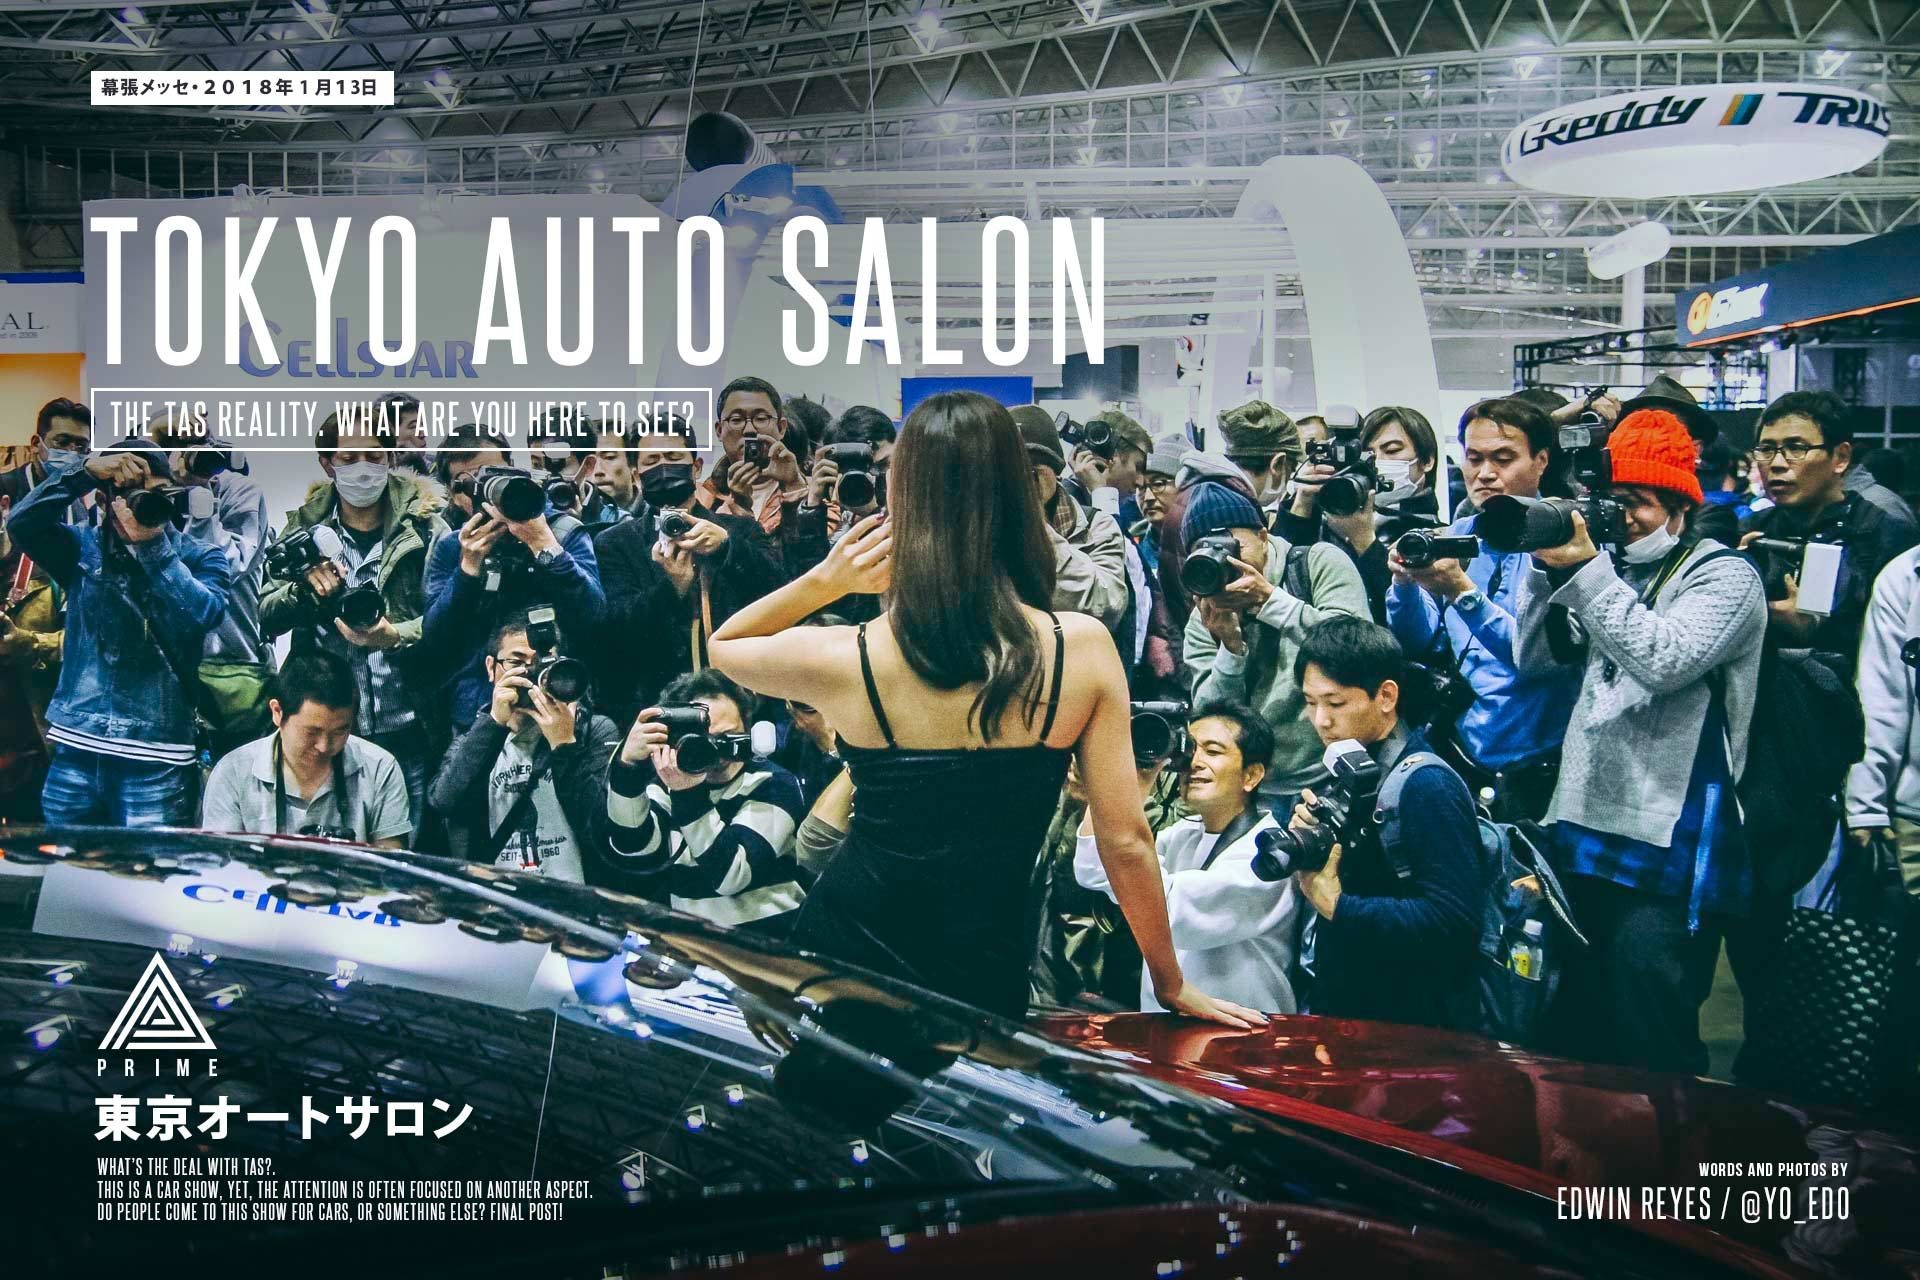 tokyo auto salon reality what are you here to see prime